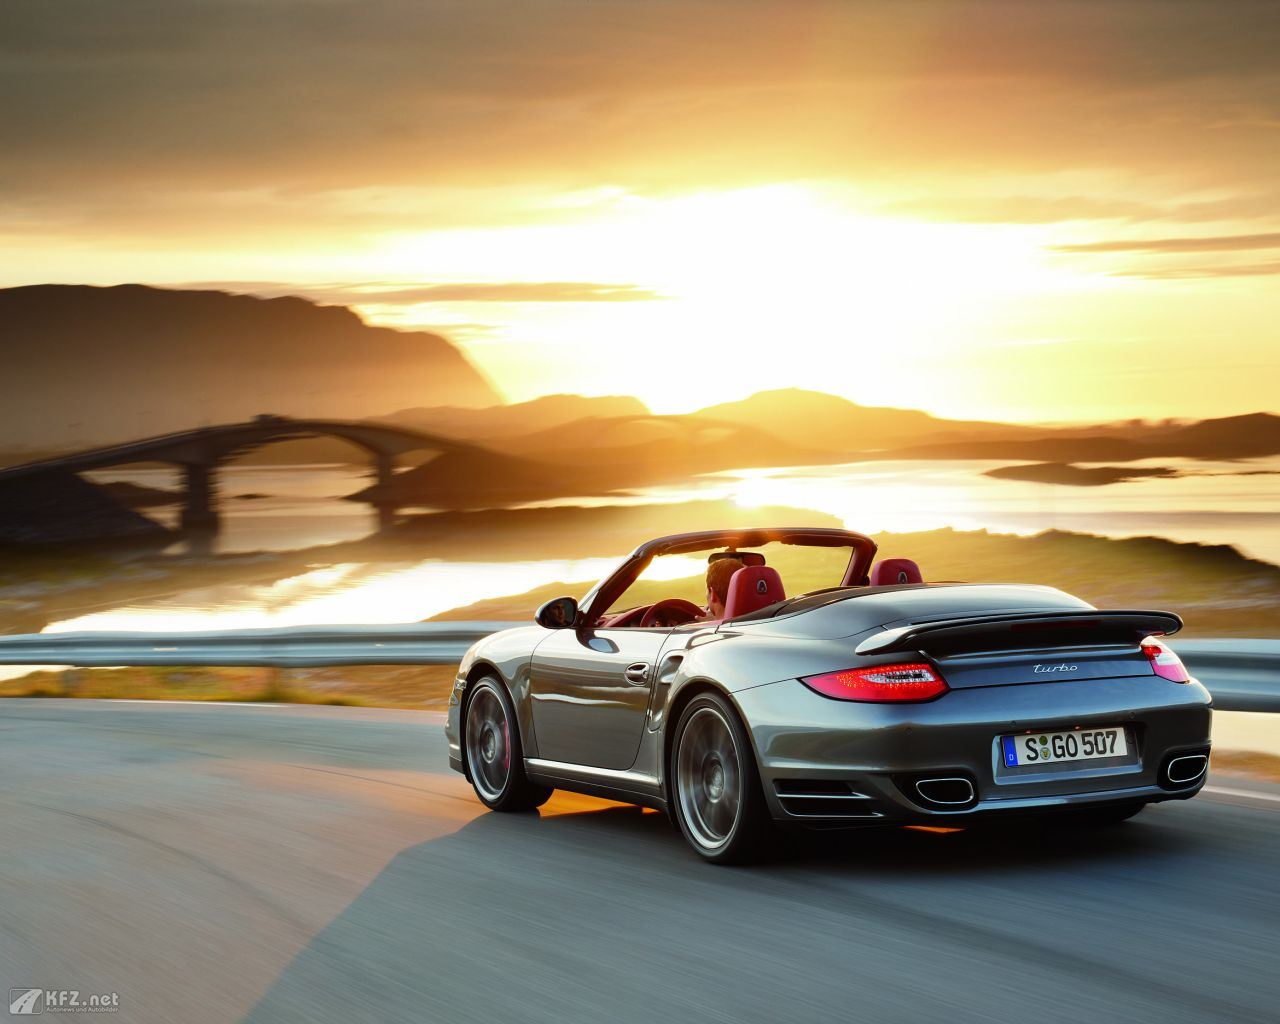 porsche-911-turbo-coupe-1280x1024-16